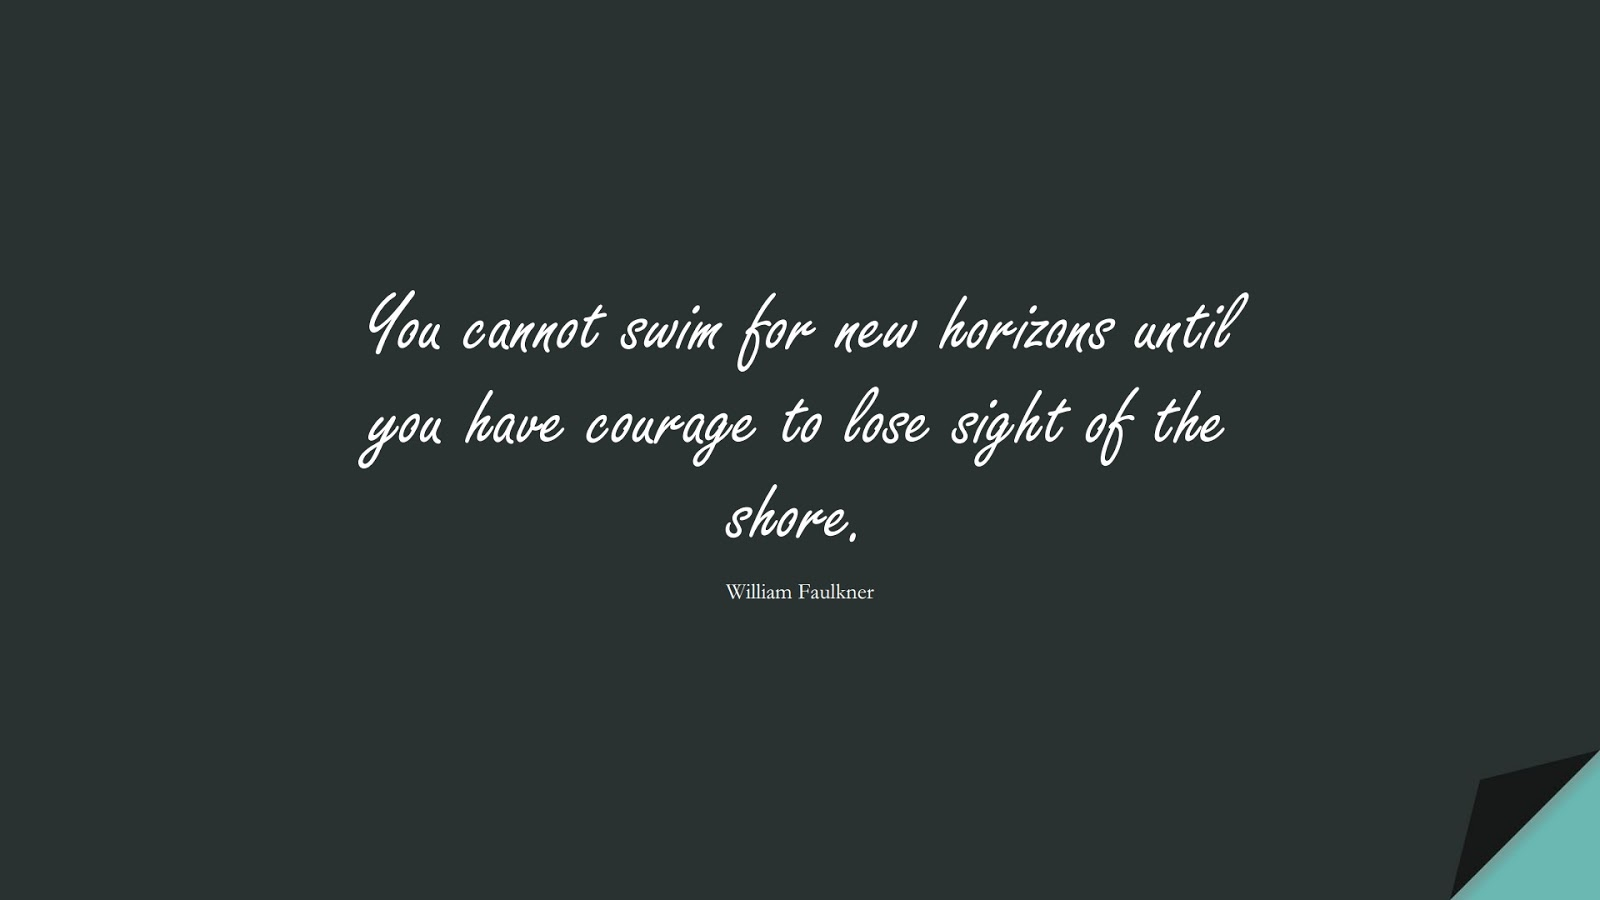 You cannot swim for new horizons until you have courage to lose sight of the shore. (William Faulkner);  #HopeQuotes